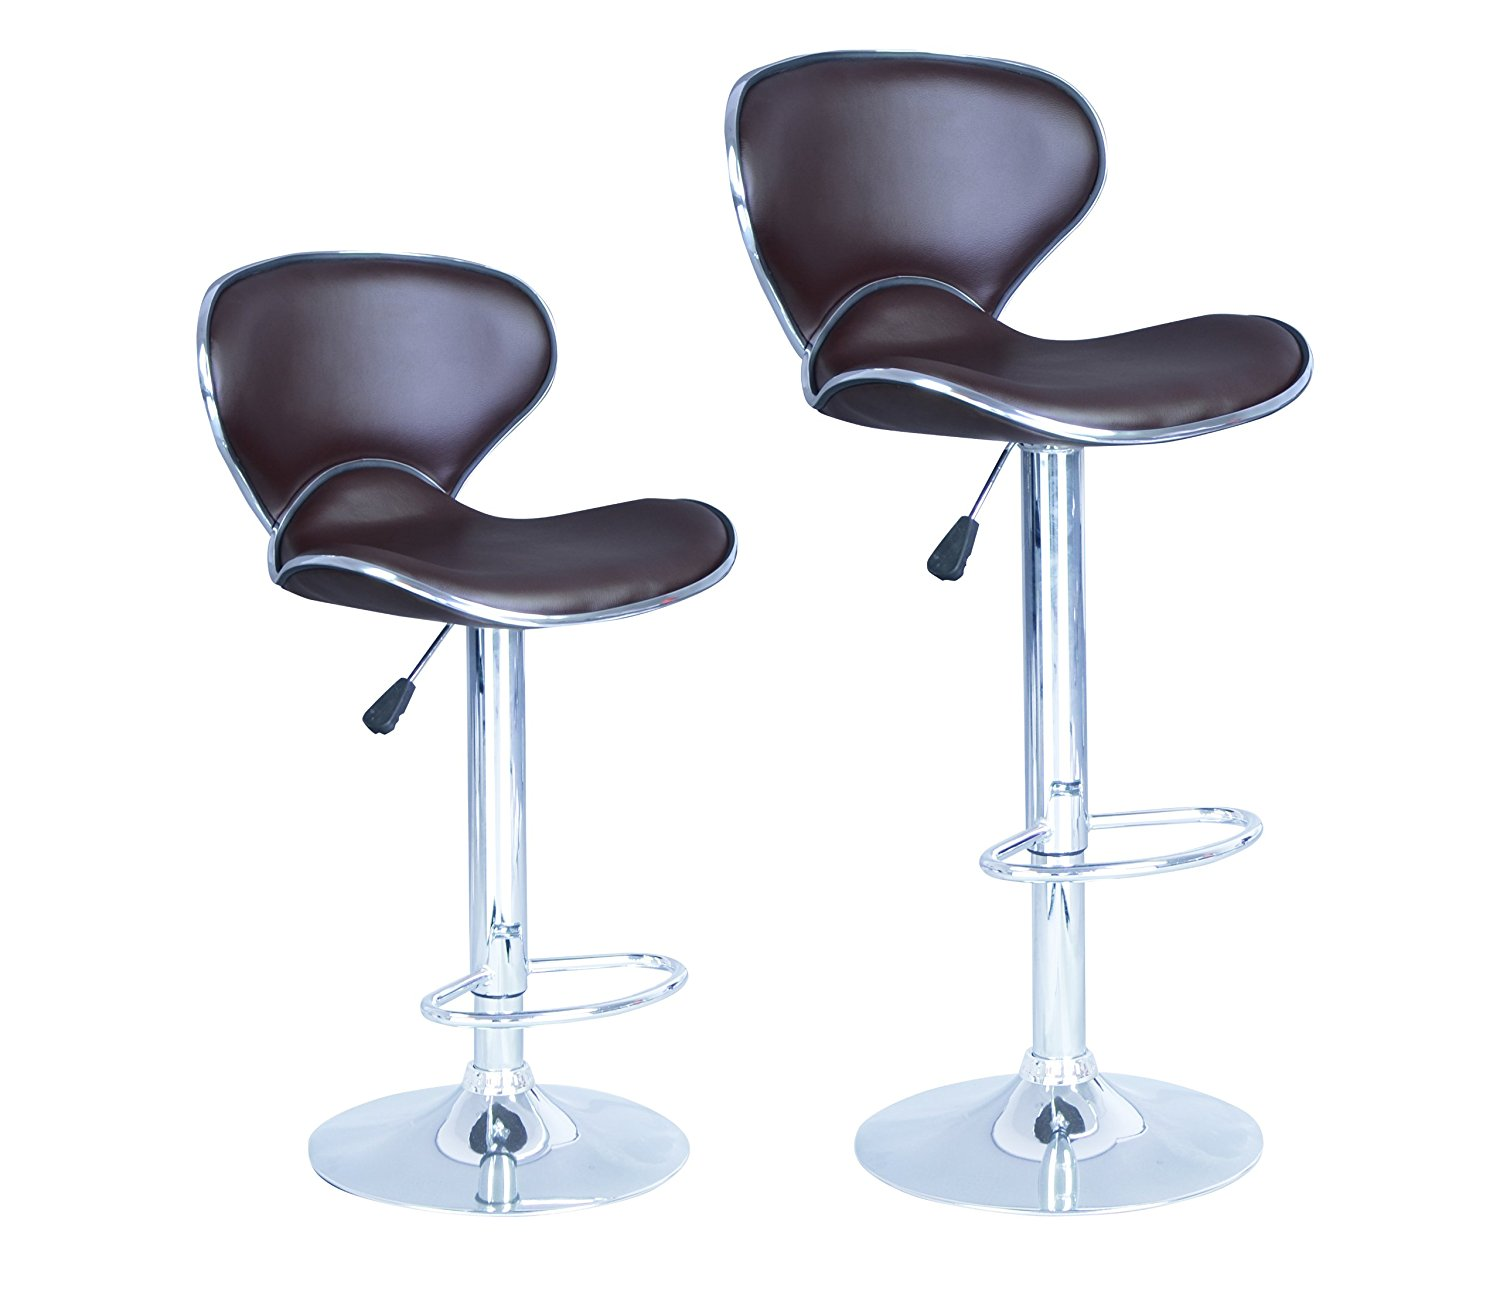 Superbe BrownModern Adjustable Synthetic Leather Swivel Bar Stools Chairs B03 Sets  Of 2